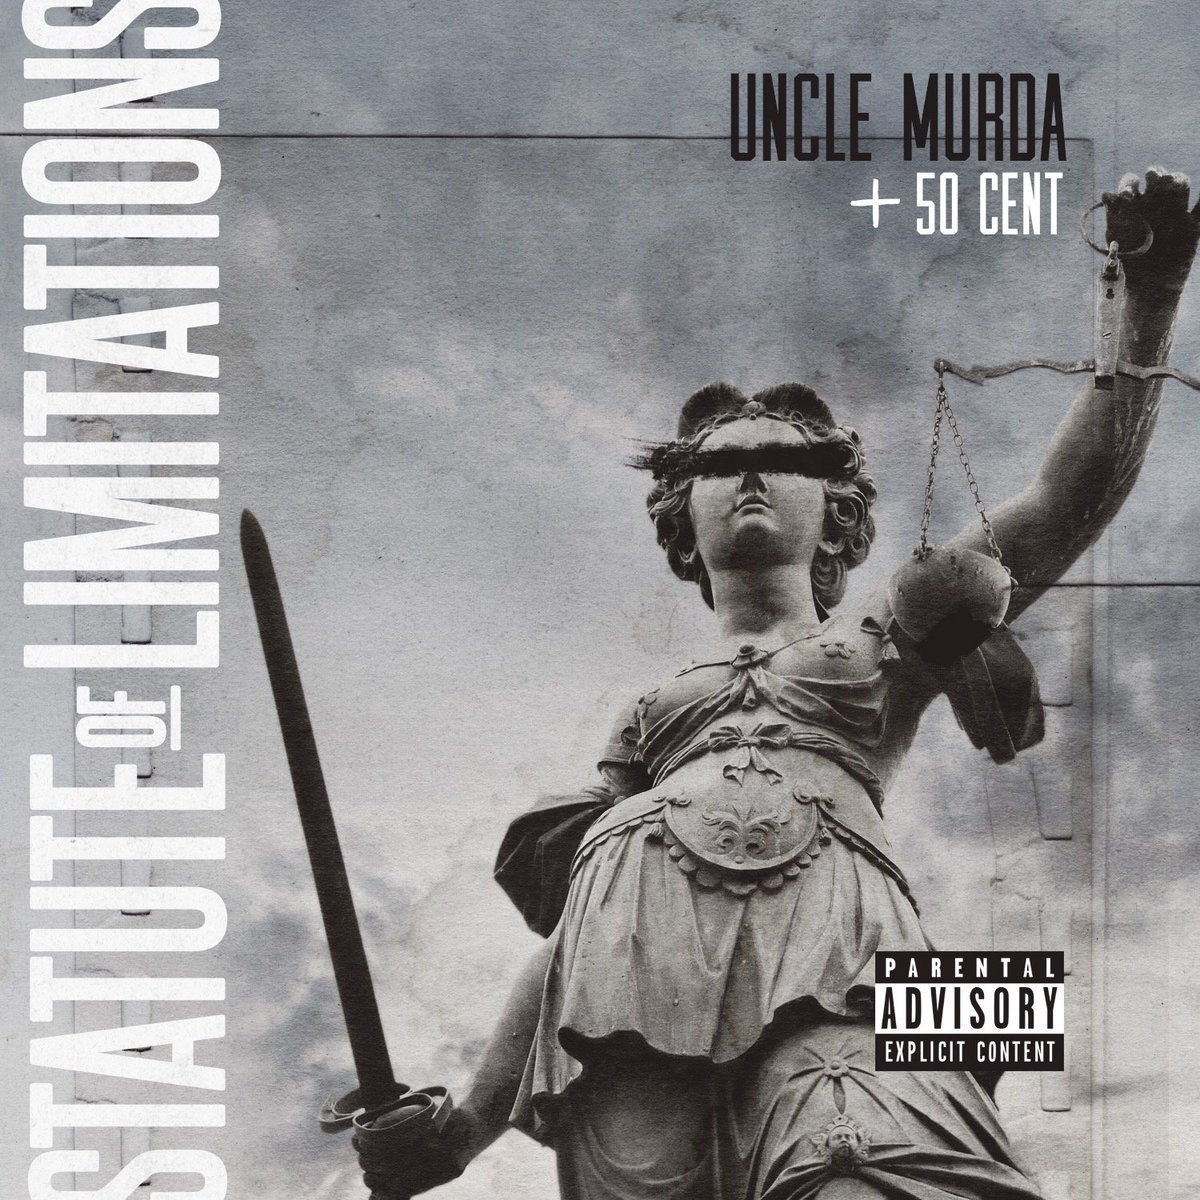 New sh!t check it out 50 and @unclemurda STATUE OF LIMITATIONS ???? https://t.co/ePphYkVwRi https://t.co/IFpoo7EbMS